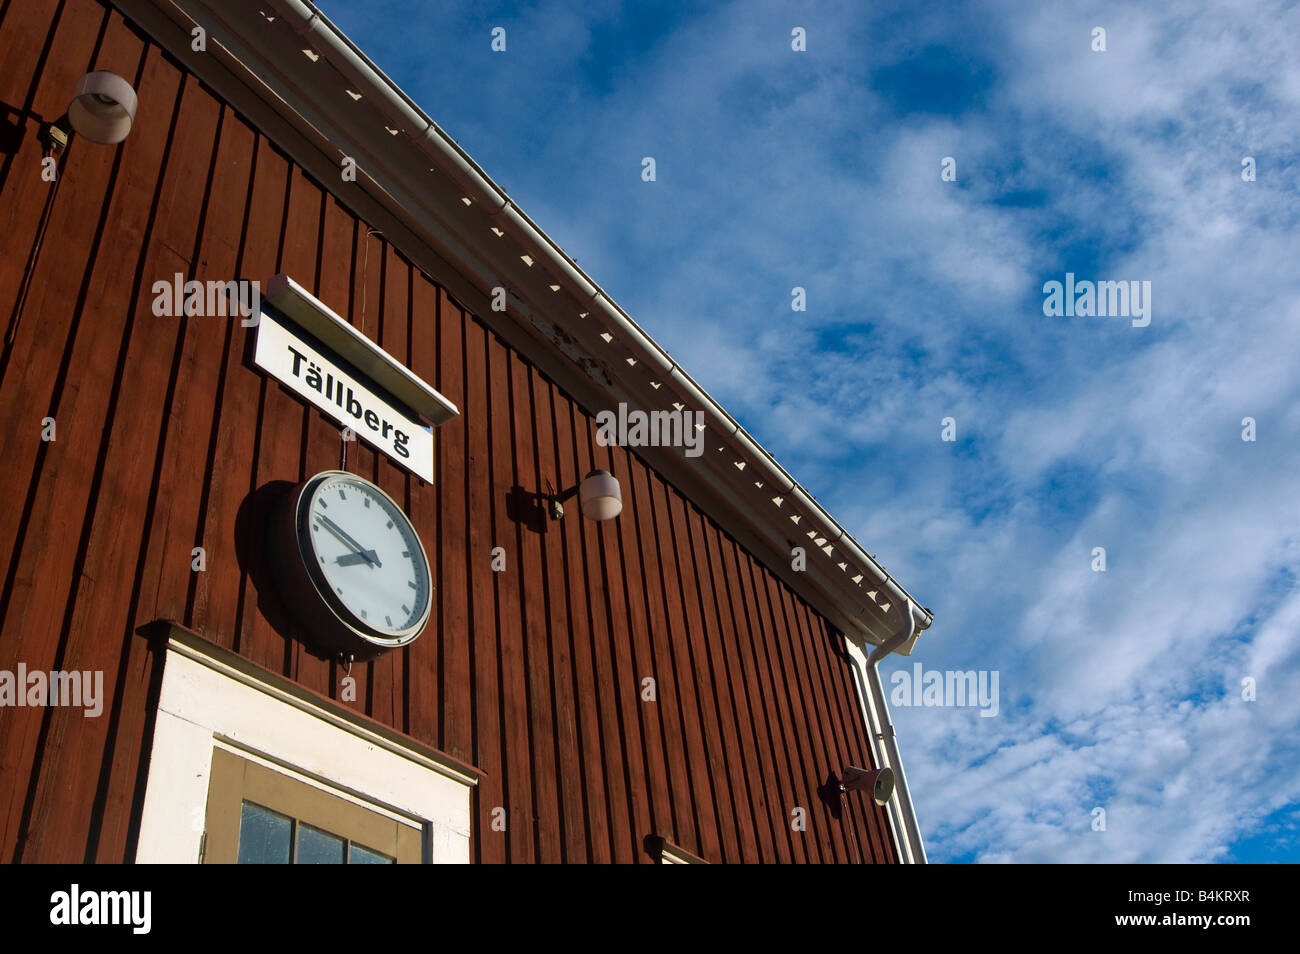 Quater to eight at the station of Tällberg, Dalarna, Sweden, Europe - Stock Image